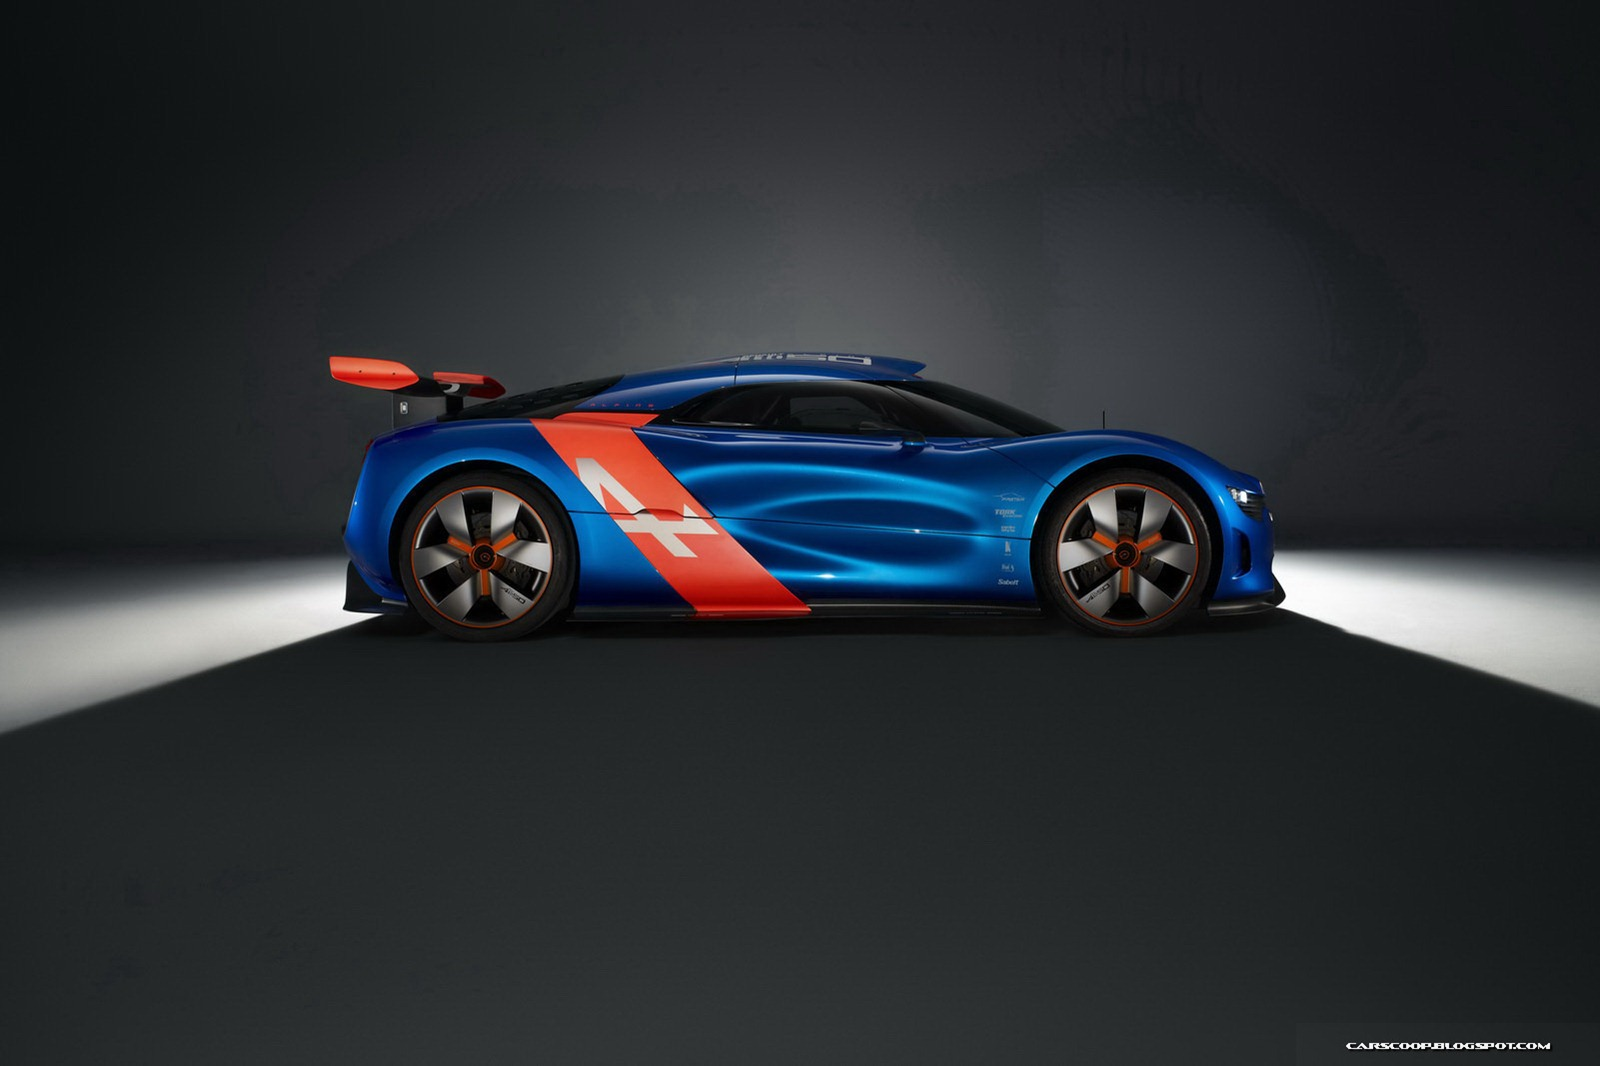 renault alpine konzept vektorgrafik - photo #5